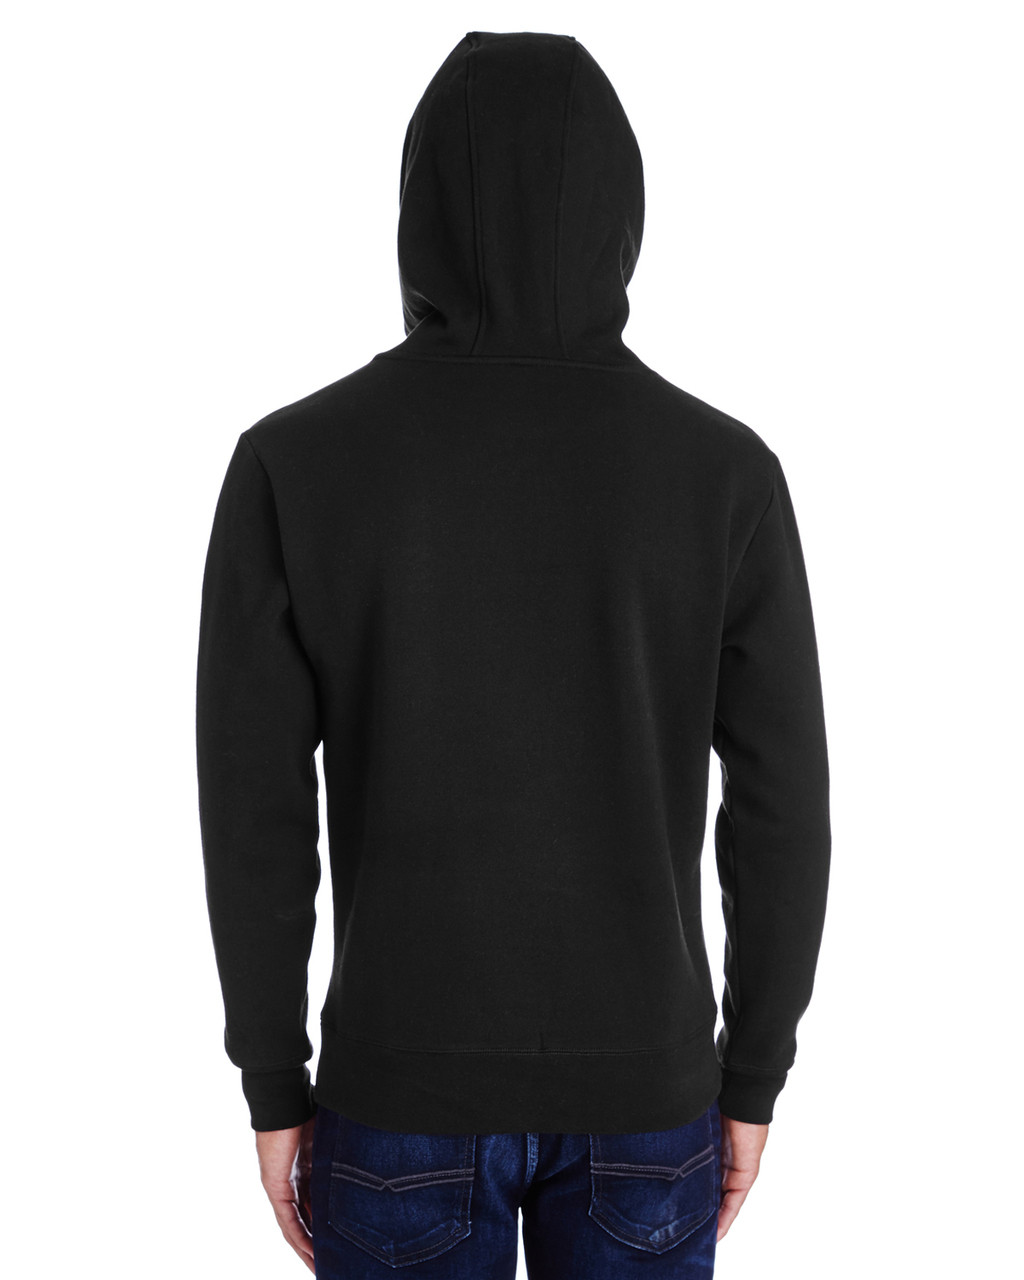 Black -Back,  322H Threadfast Unisex Precision Fleece Hoodie | Blankclothing.ca